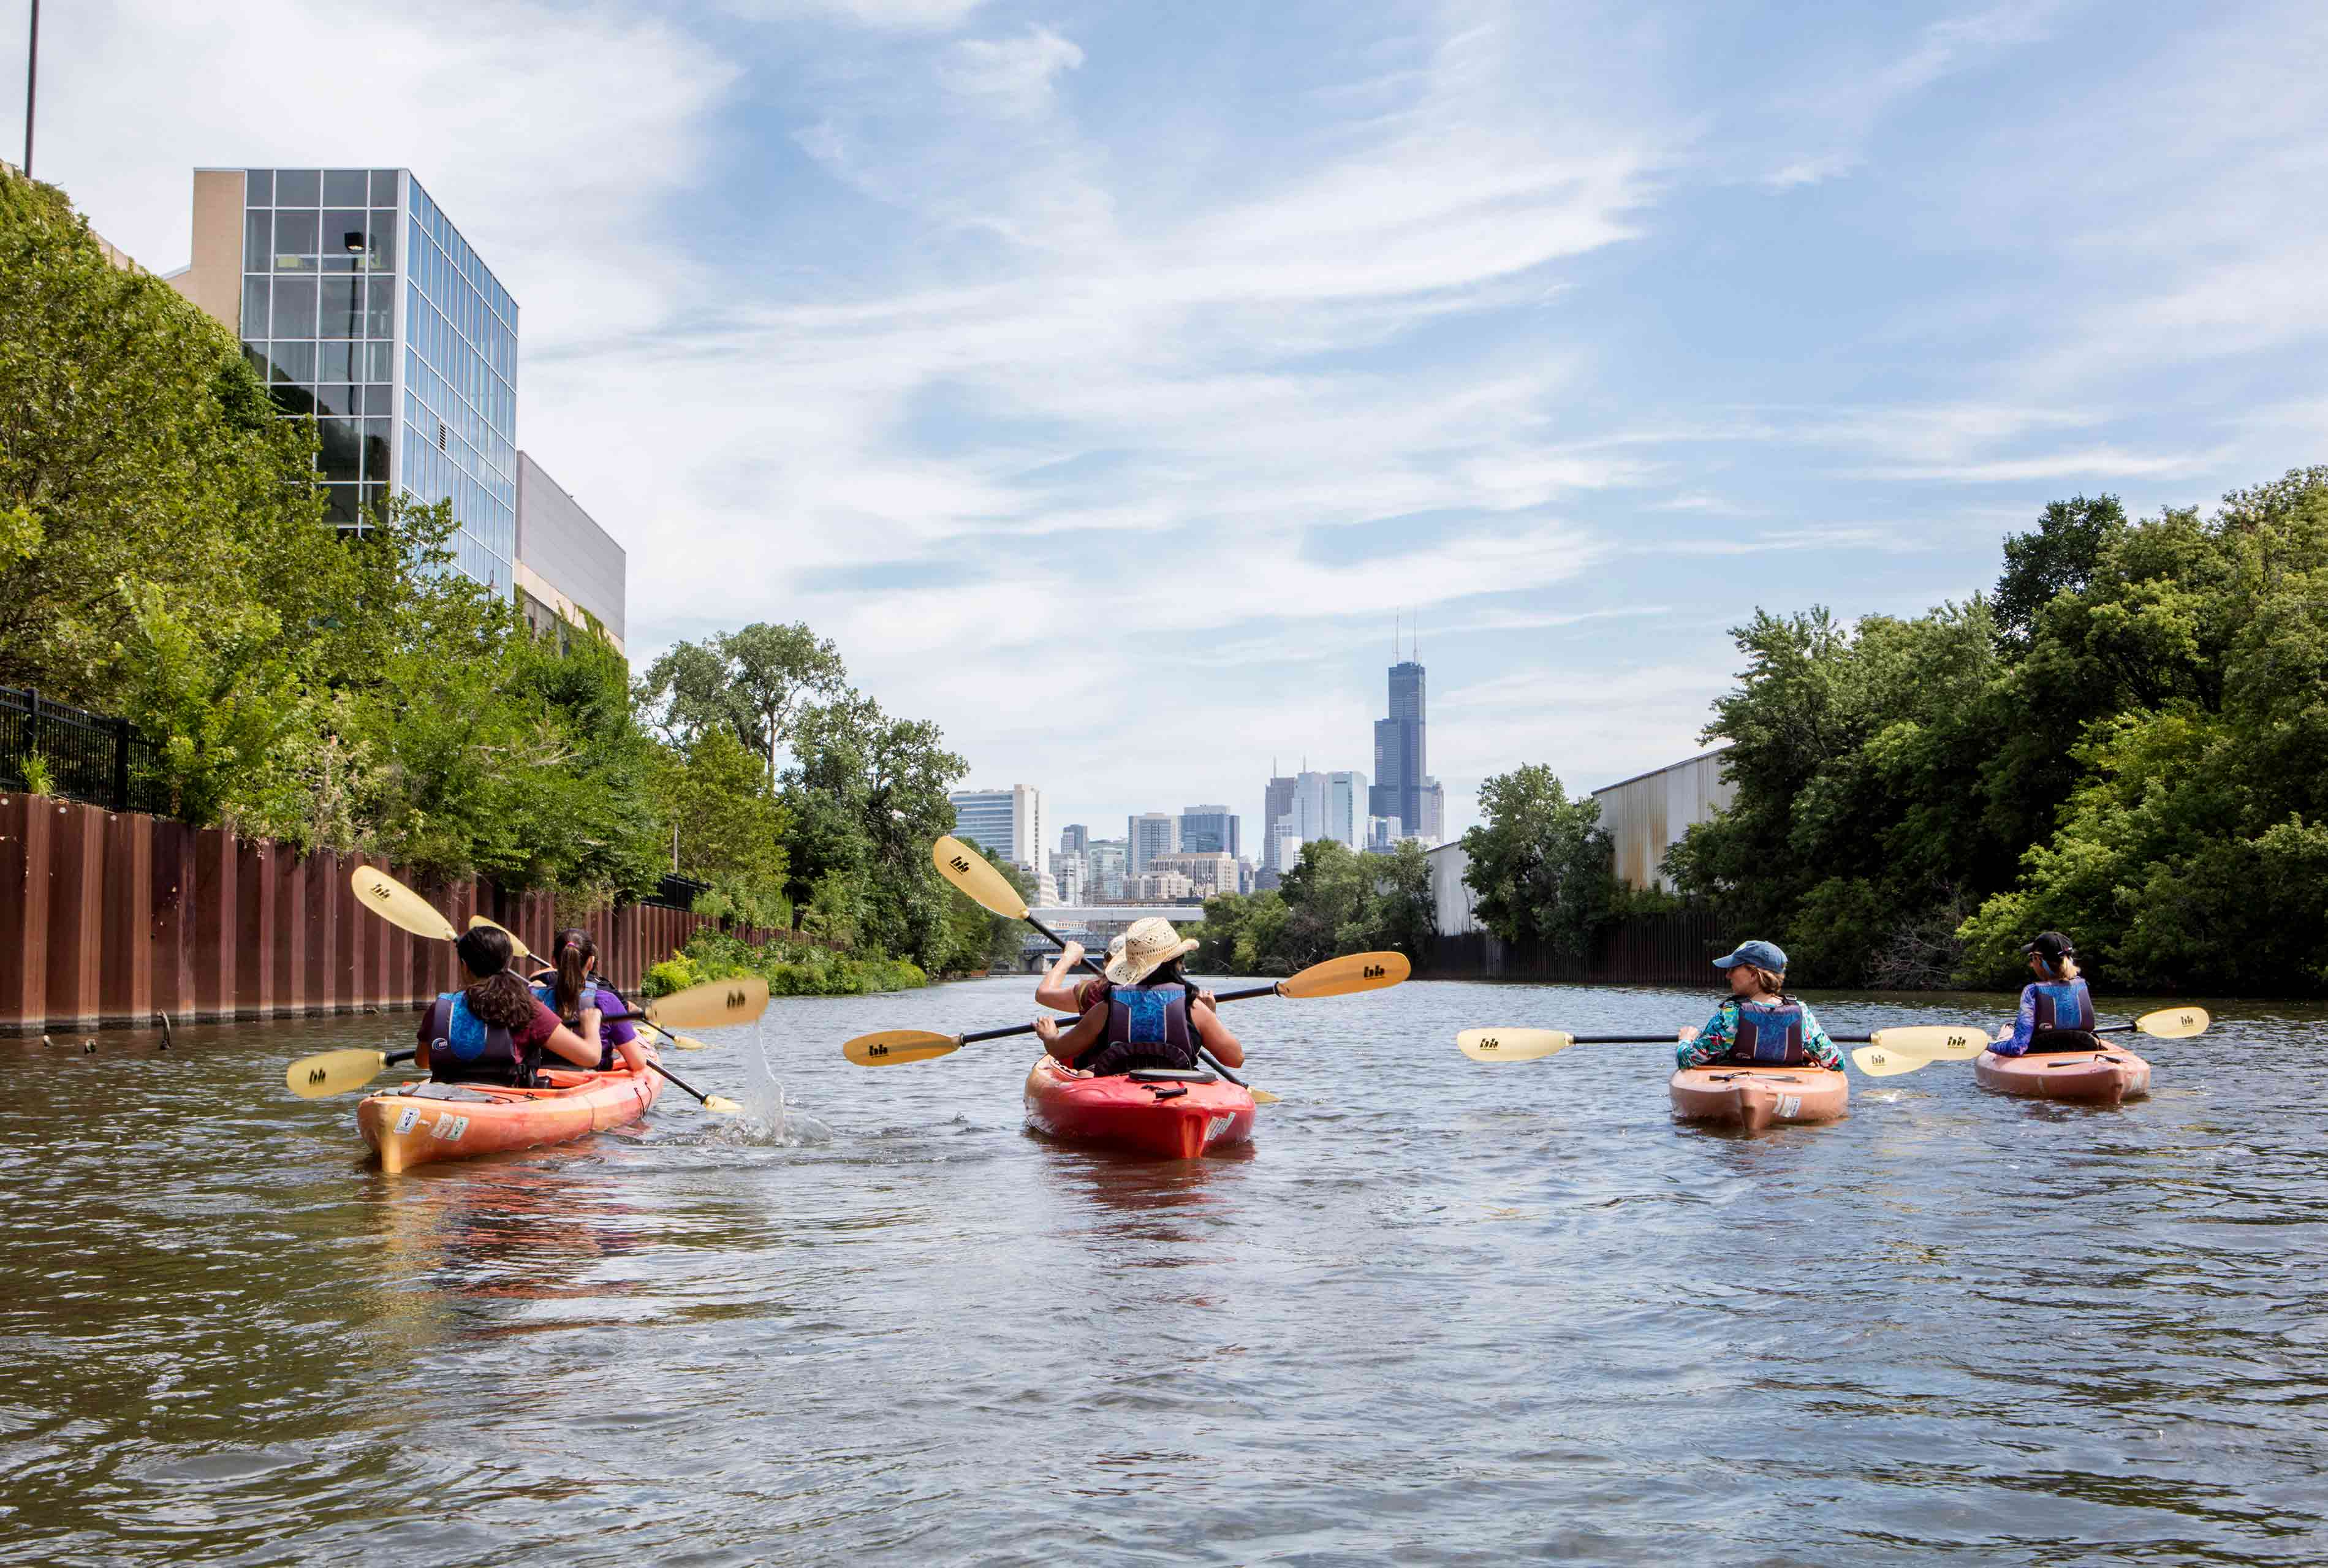 Participants of Shedd Aquarium's Kayak for Conservation program paddle south on the Chicago River toward new habitats that float on the river's surface, which were installed by Shedd and their partners as part of an ongoing habitat restoration project. During the mission-driven, revenue-generation kayaking experience, participants learn about the river and how to take conservation actions that improve its health.